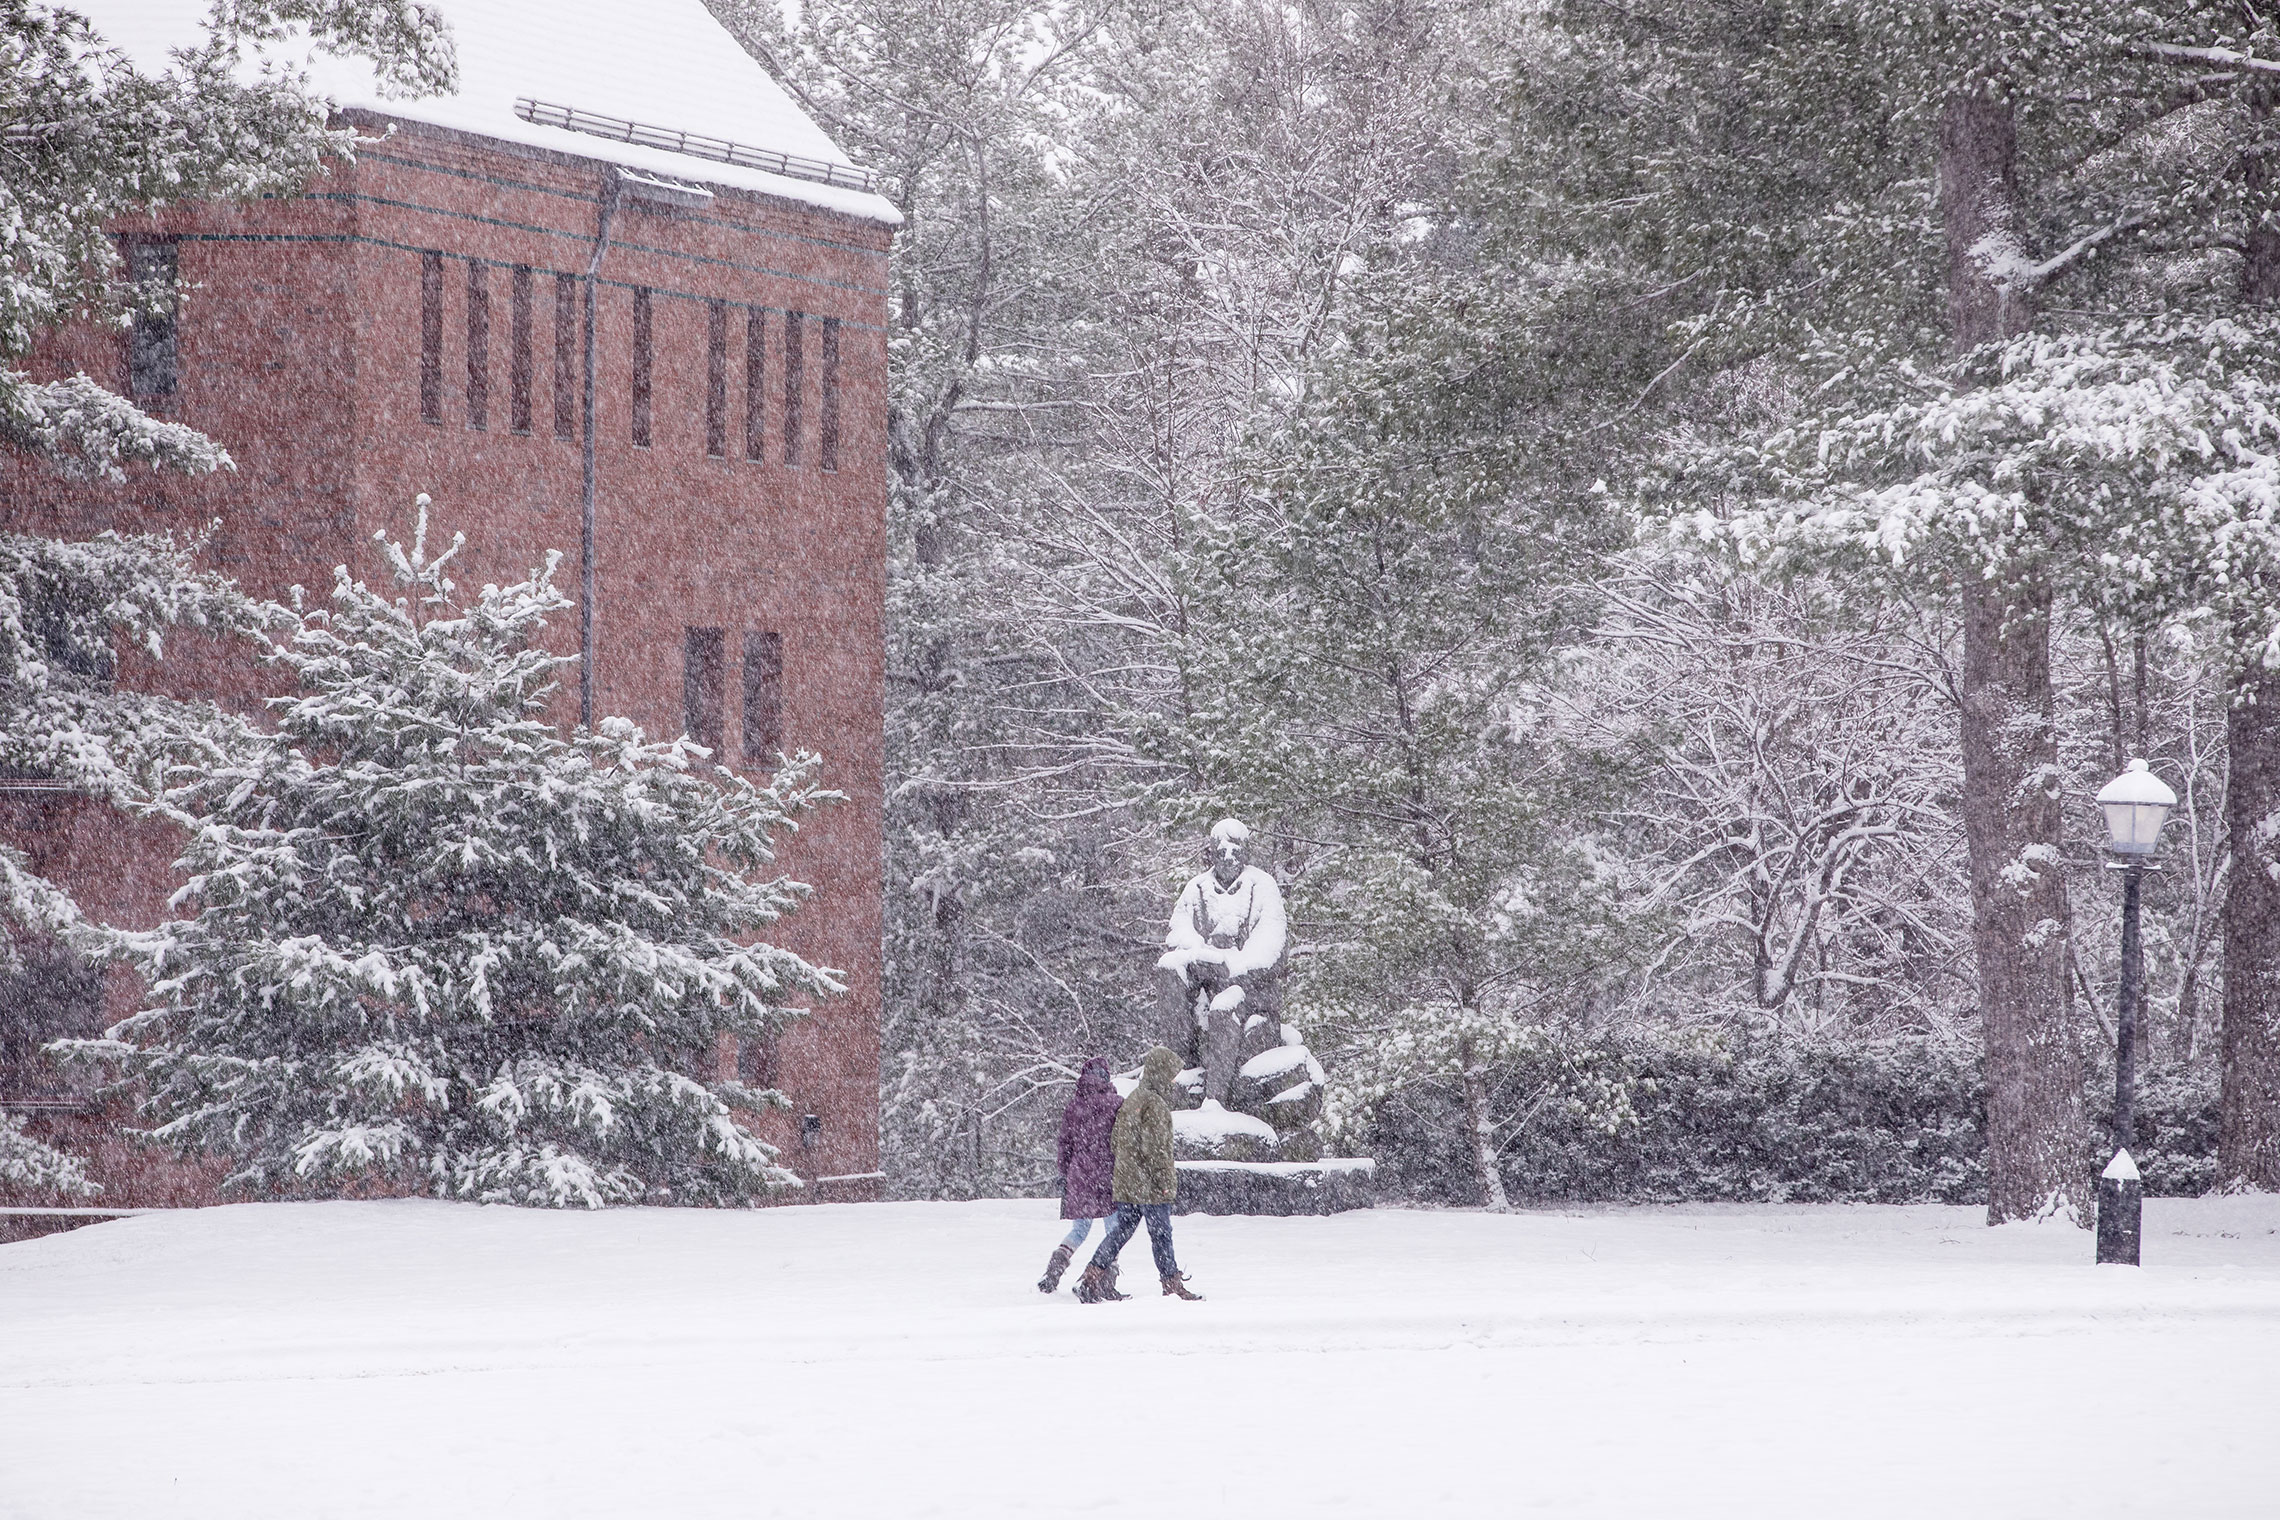 Students passing by a statue of Robert Frost on a snowy day.